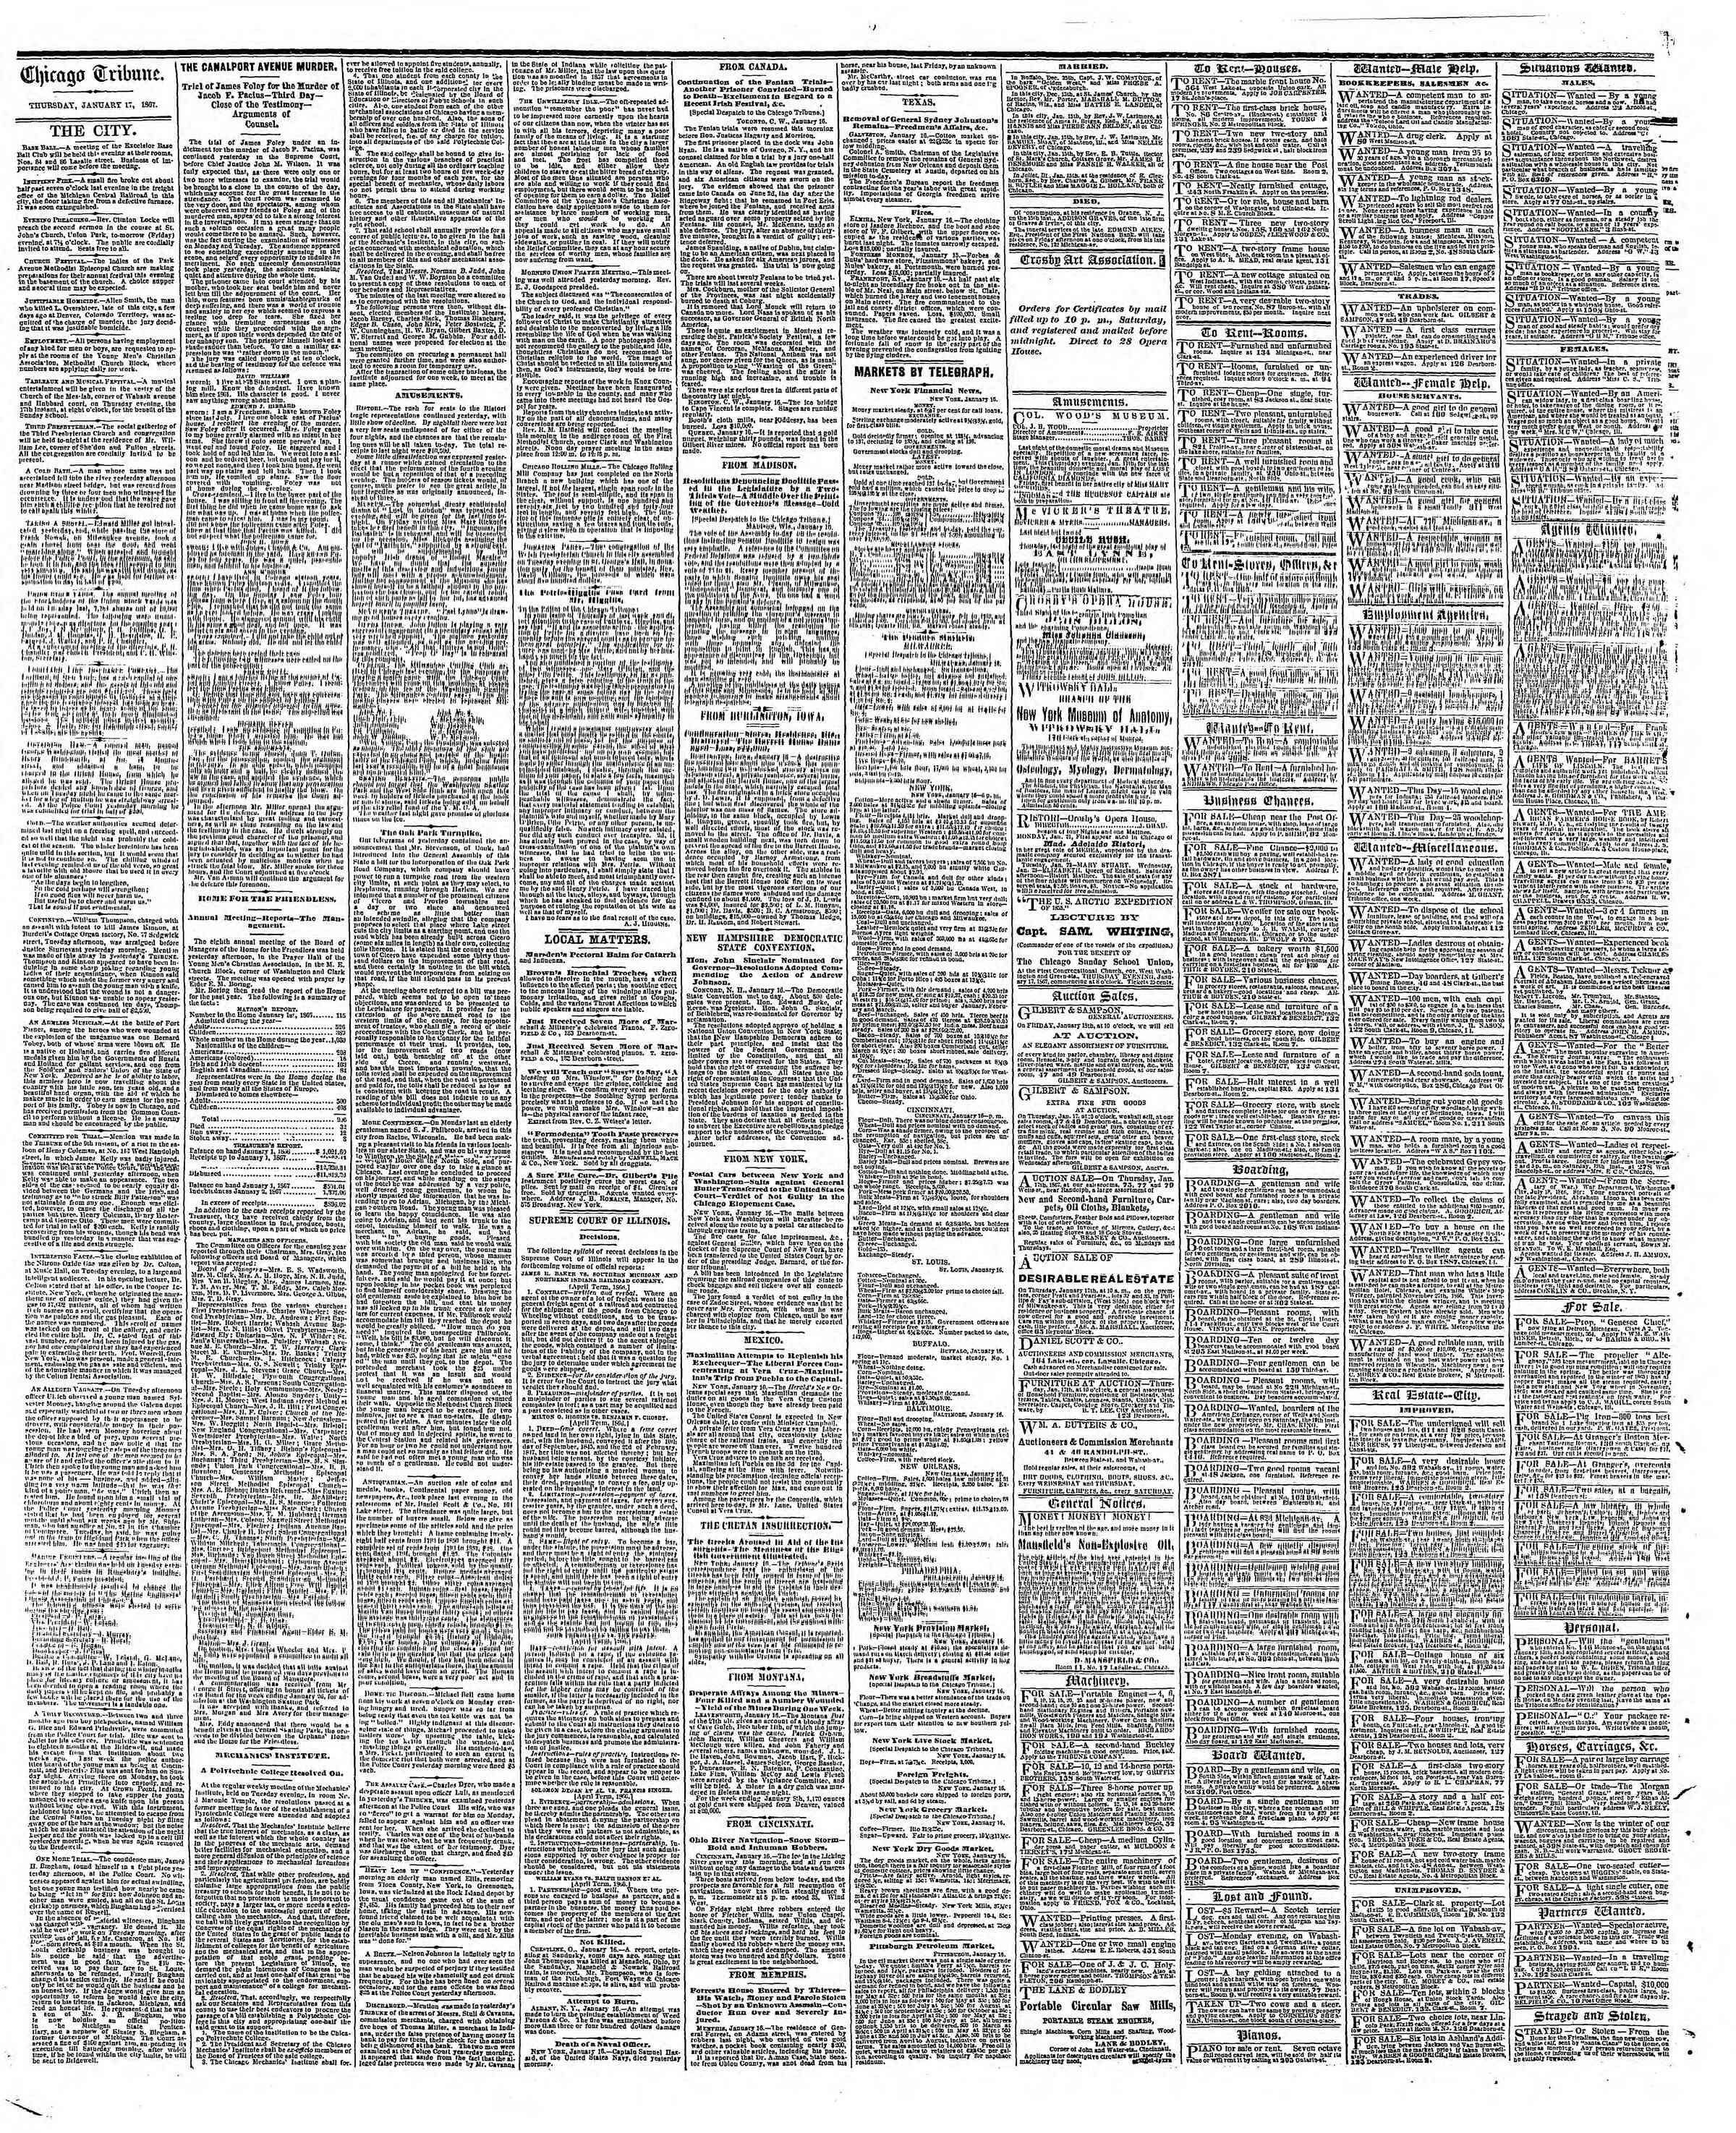 Newspaper of The Chicago Tribune dated January 17, 1867 Page 4